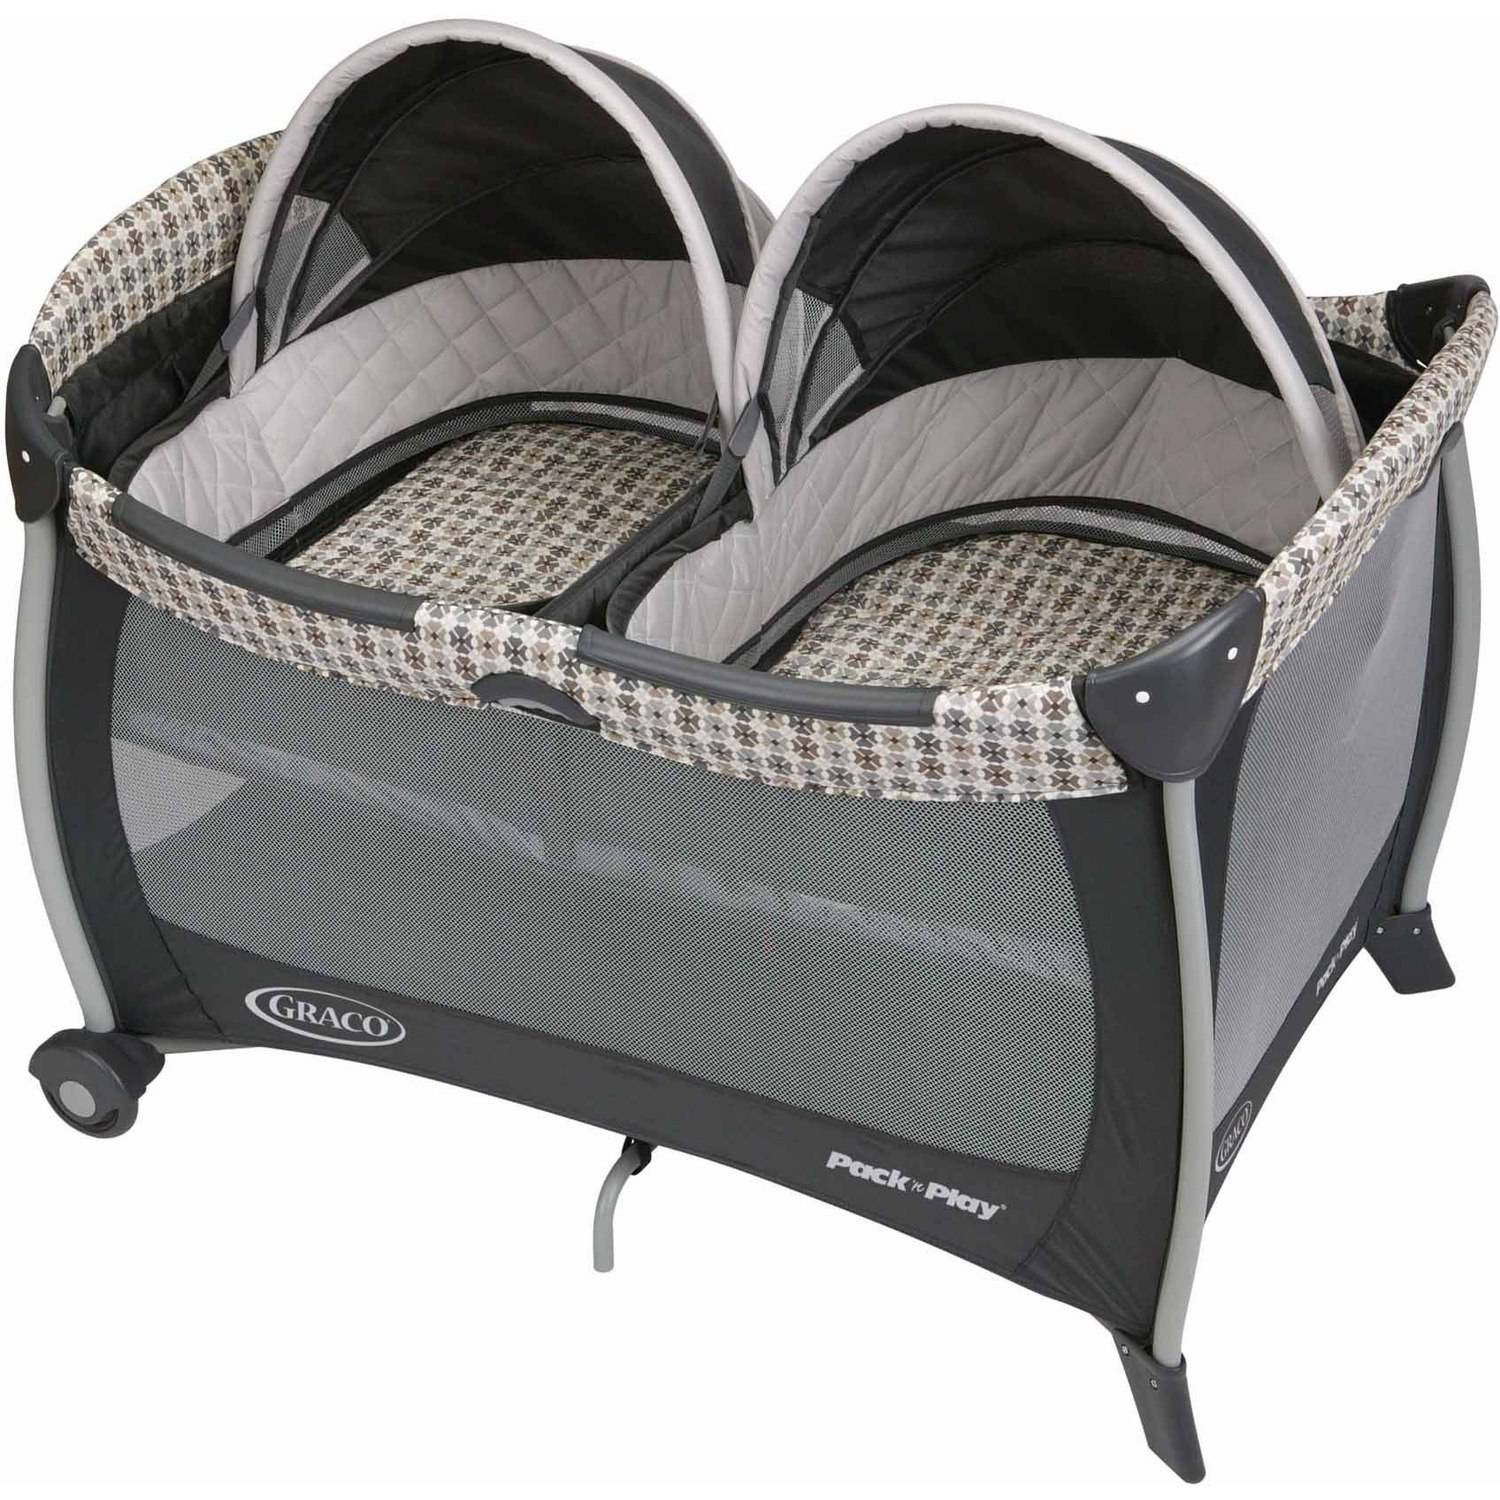 Graco - Twins Bassinet Pack 'n Play Playard, Vance